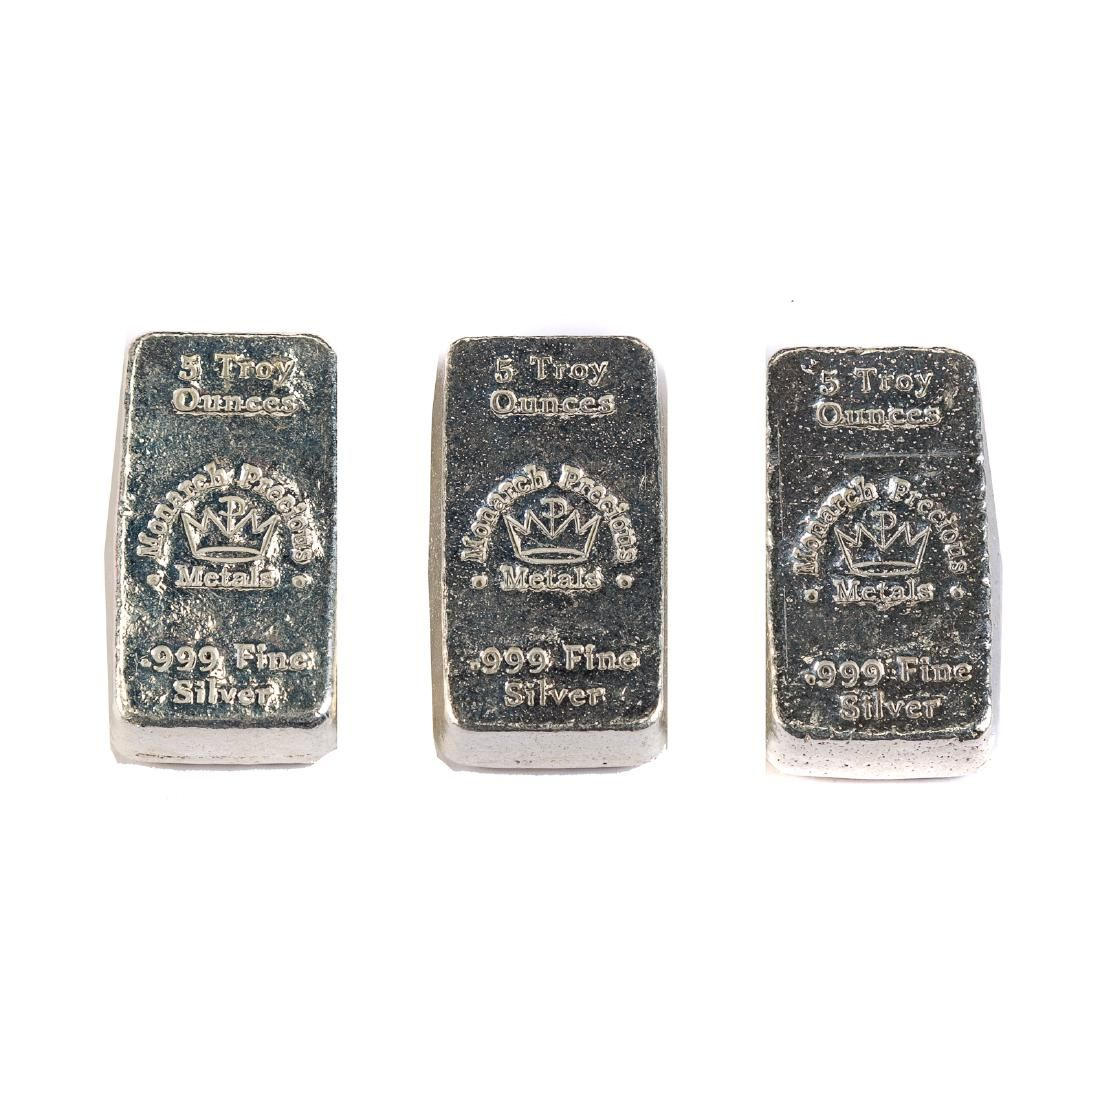 Three 5 Ounce Poured Silver Bars